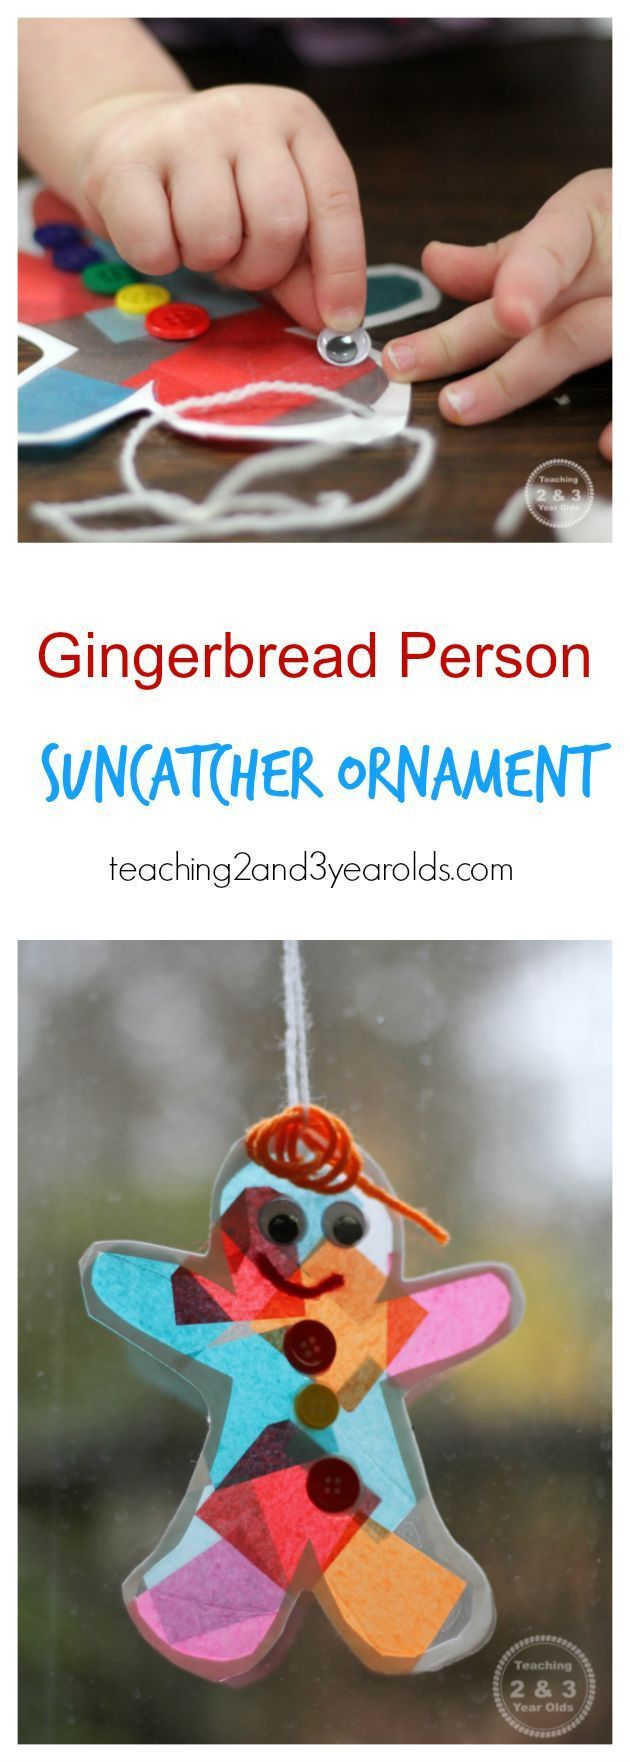 Gingerbread Suncatcher Ornament #creativeartsfor2-3yearolds